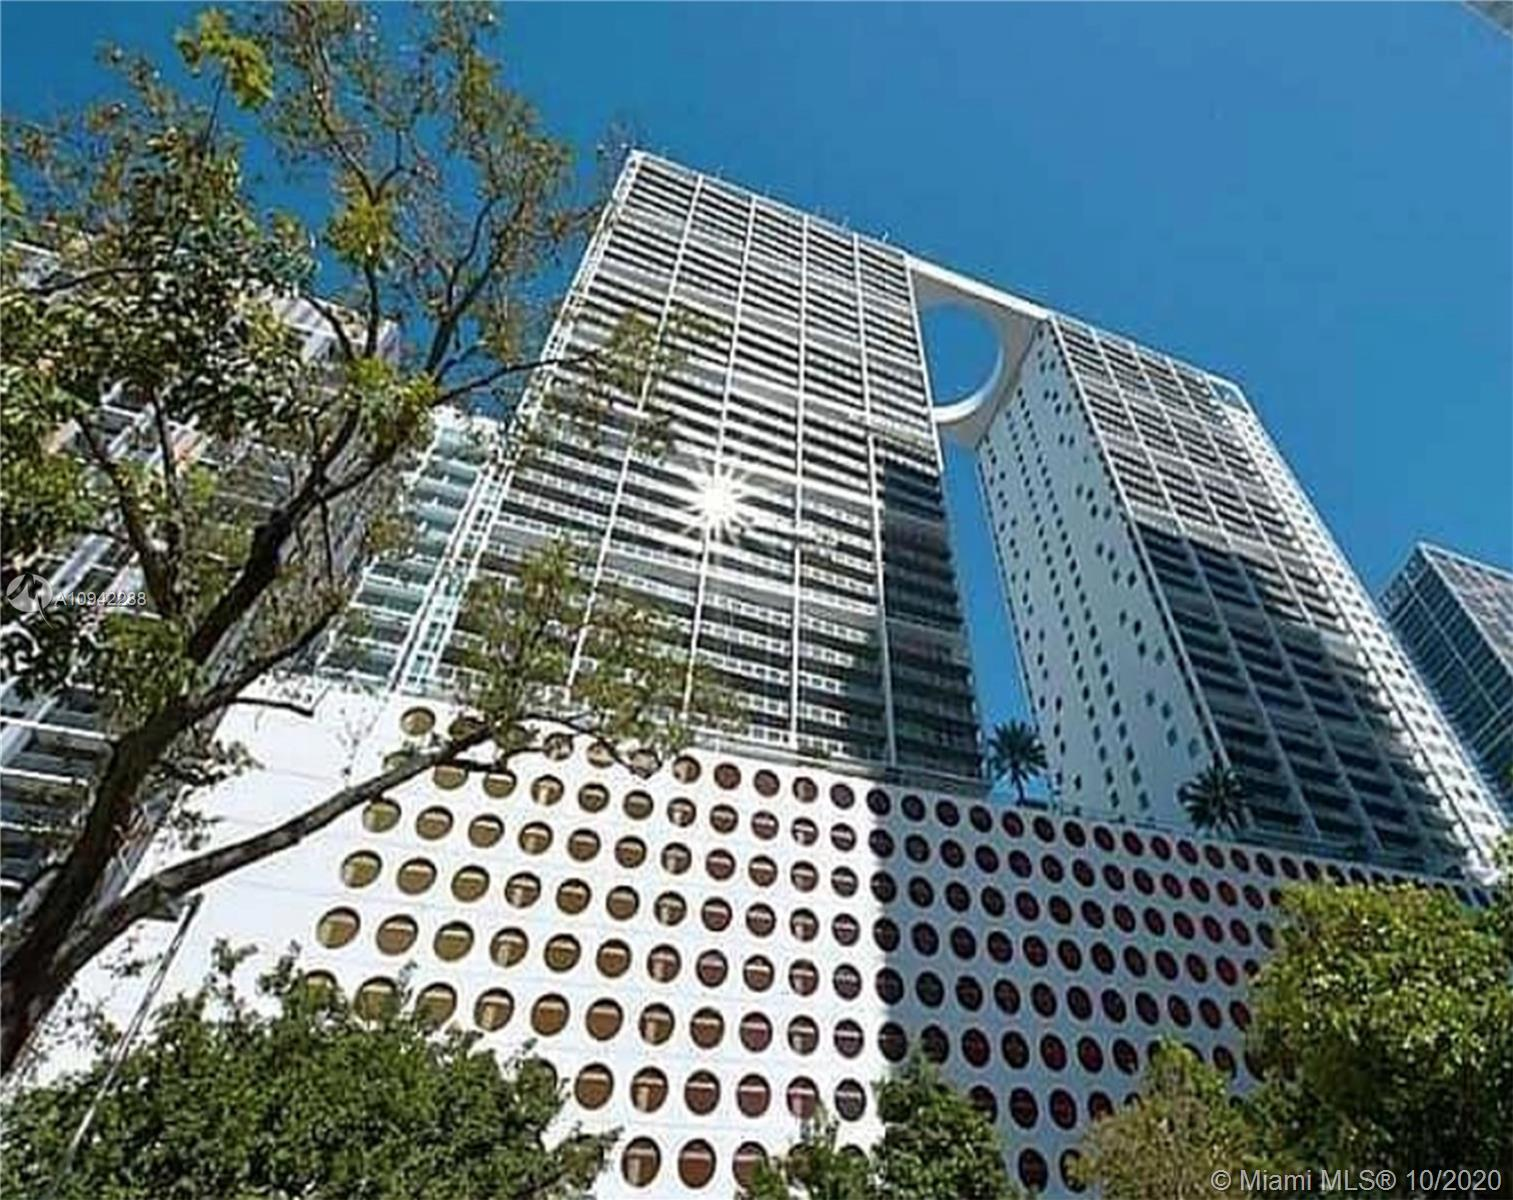 500 Brickell West Tower #2208 - 500 Brickell Ave #2208, Miami, FL 33131